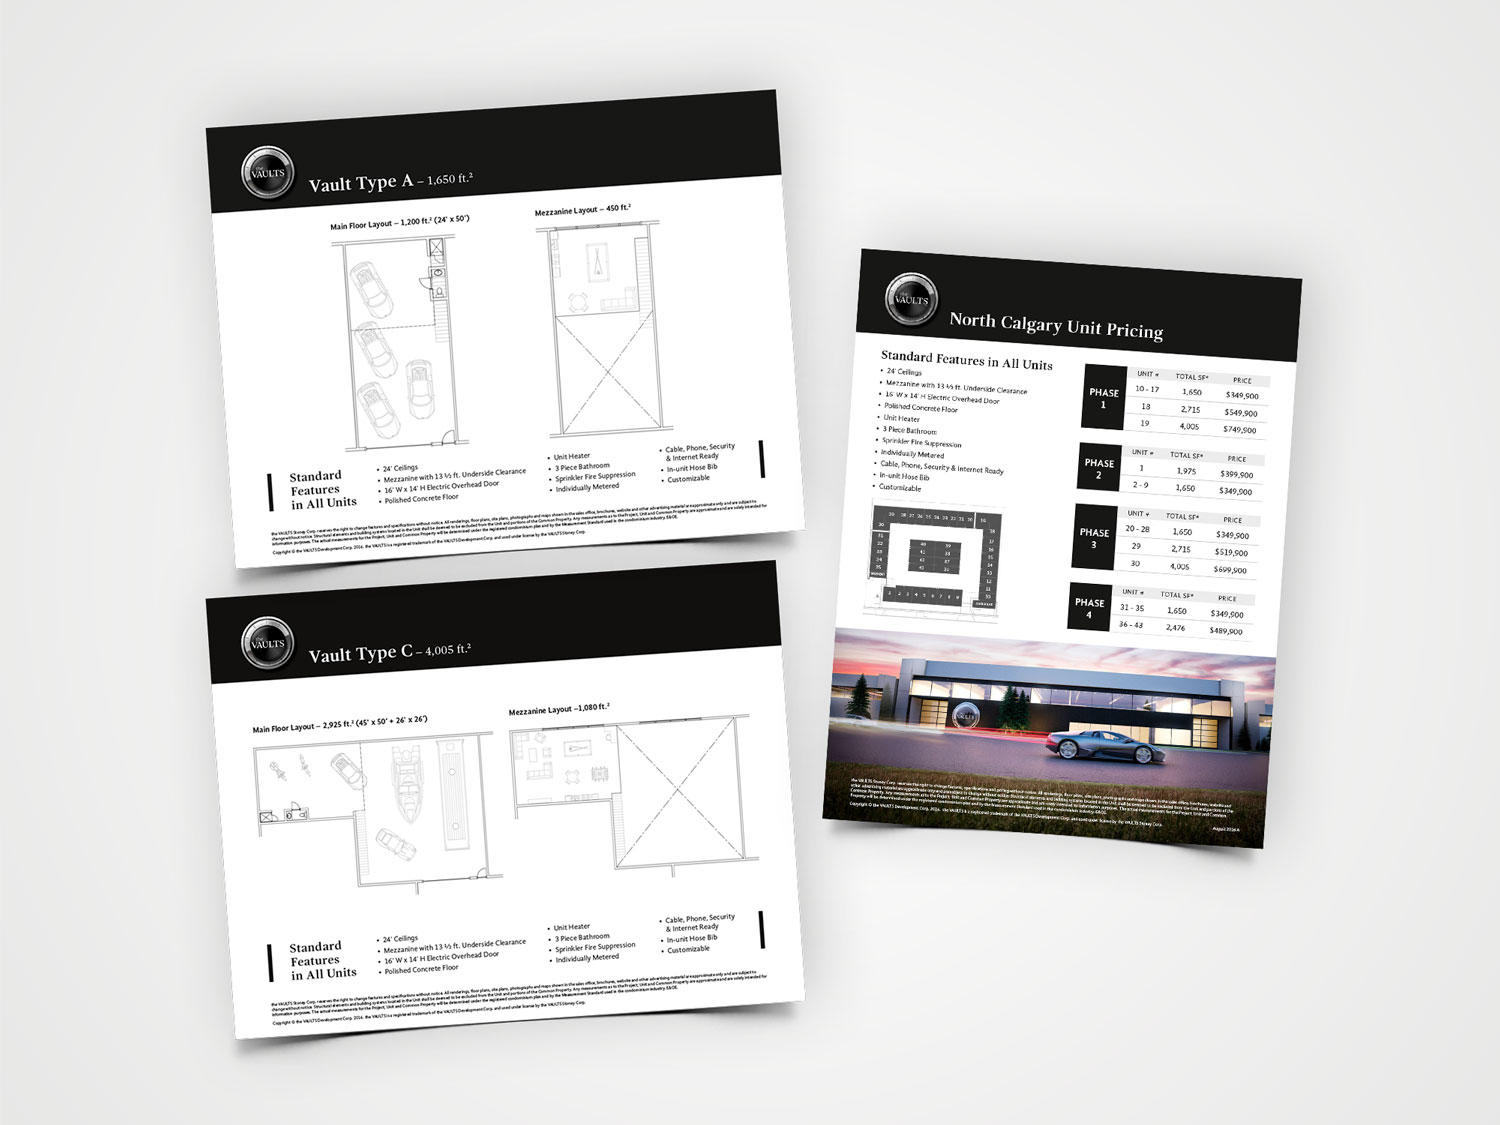 the Vaults floorplans and price list sheets